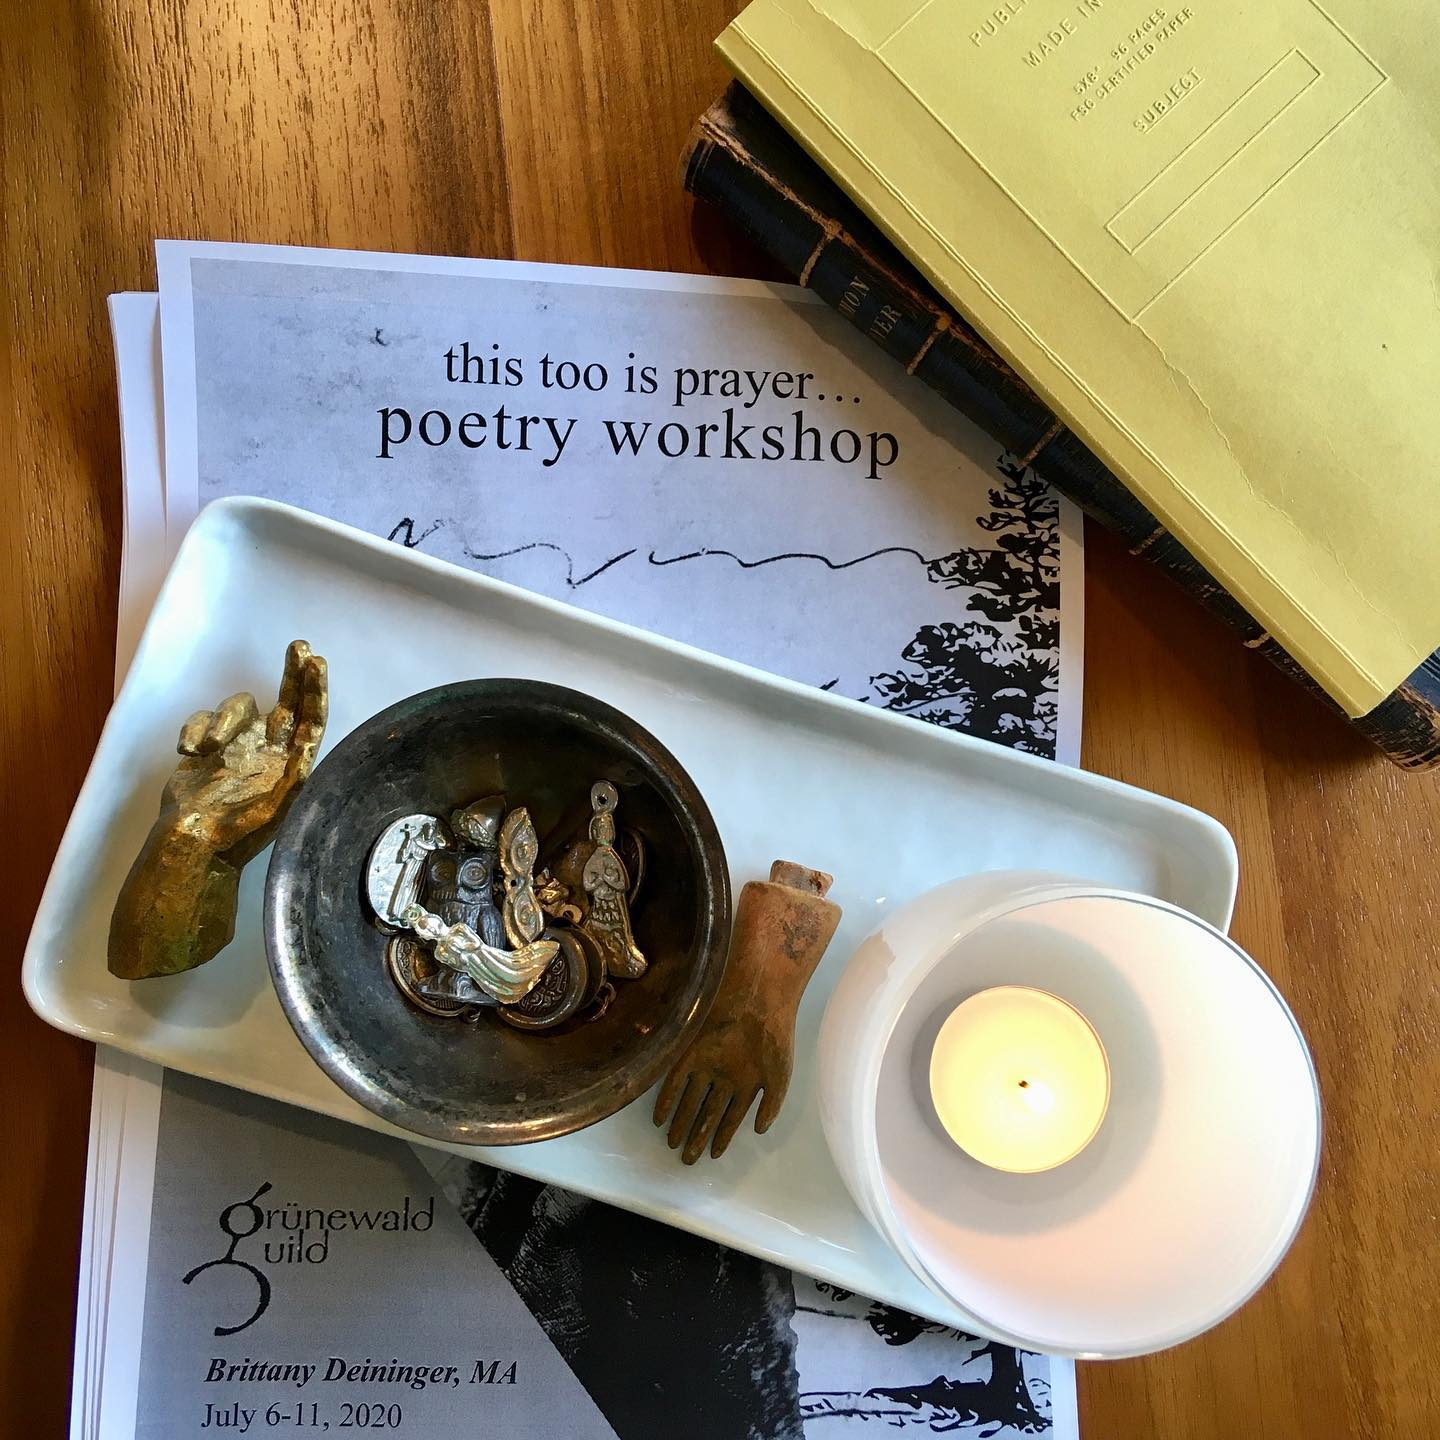 This Too is Prayer: Poetry Workshop